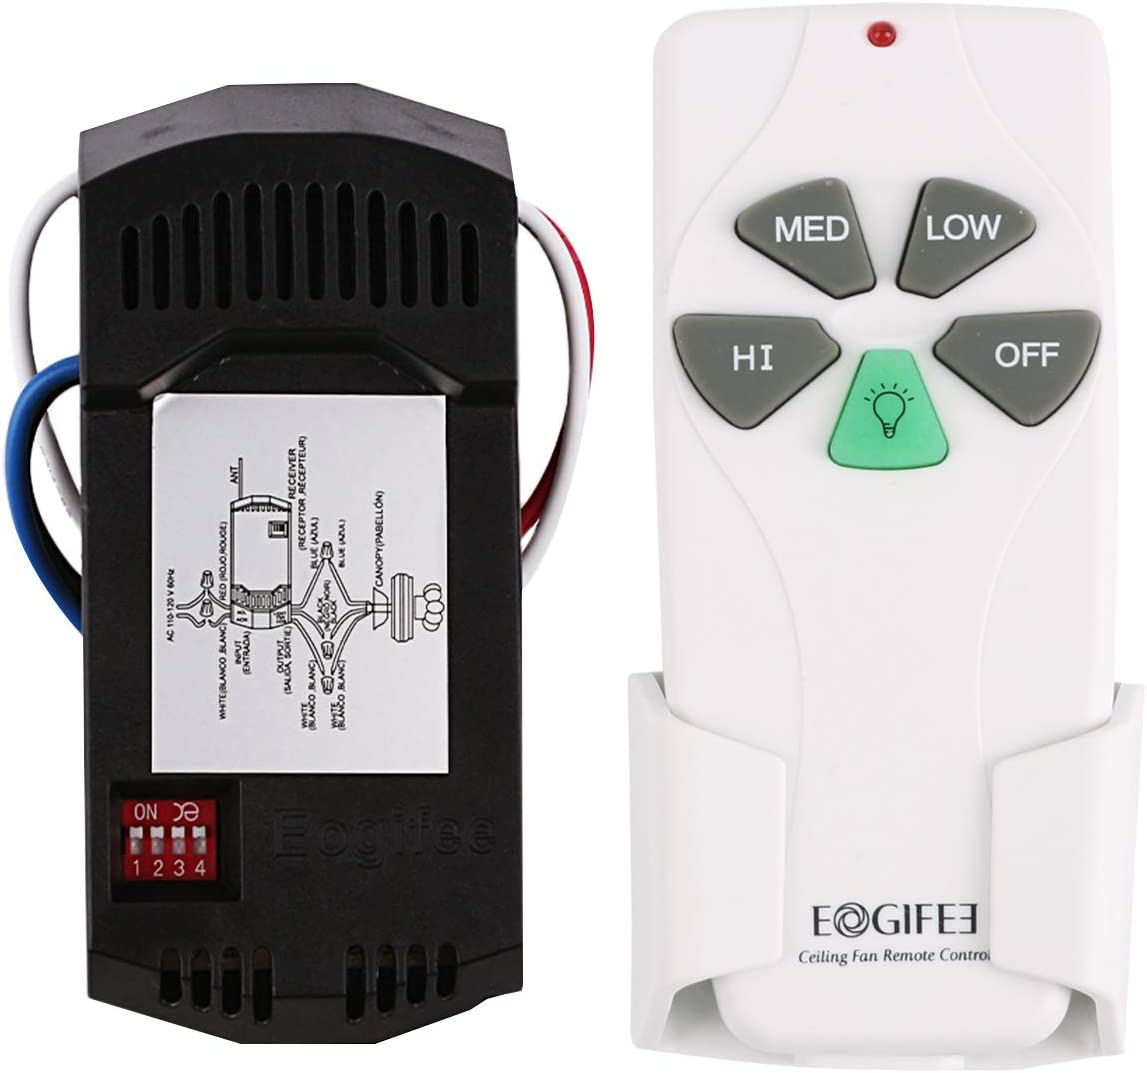 Eogifee Universal Ceiling Fan Remote Control And Receiver Kit Replacement Of Hampton Bay Harbor Breeze Hunter Fan 53t 2aazpfan 53t Kit Amazon Com